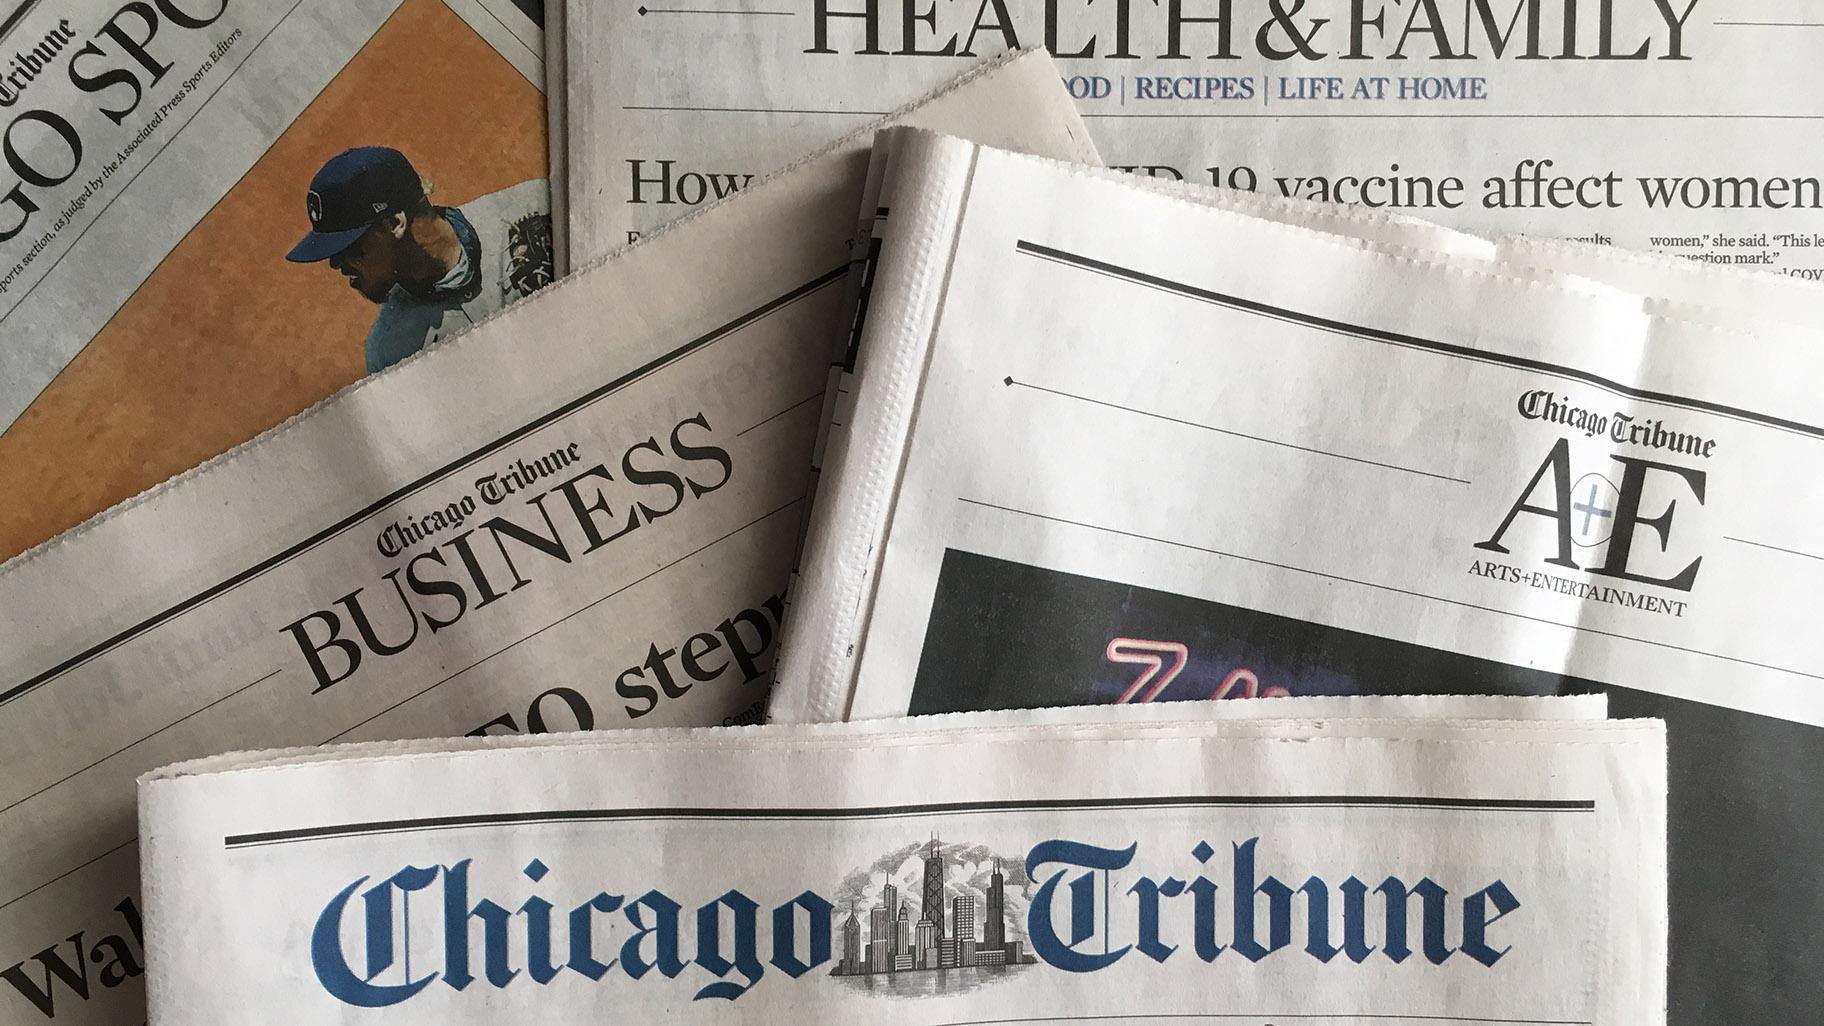 The Chicago Tribune announced changes in the paper to clarify the difference between news and opinion on Tuesday, July 28, 2020. (Rebecca Palmore / WTTW News)